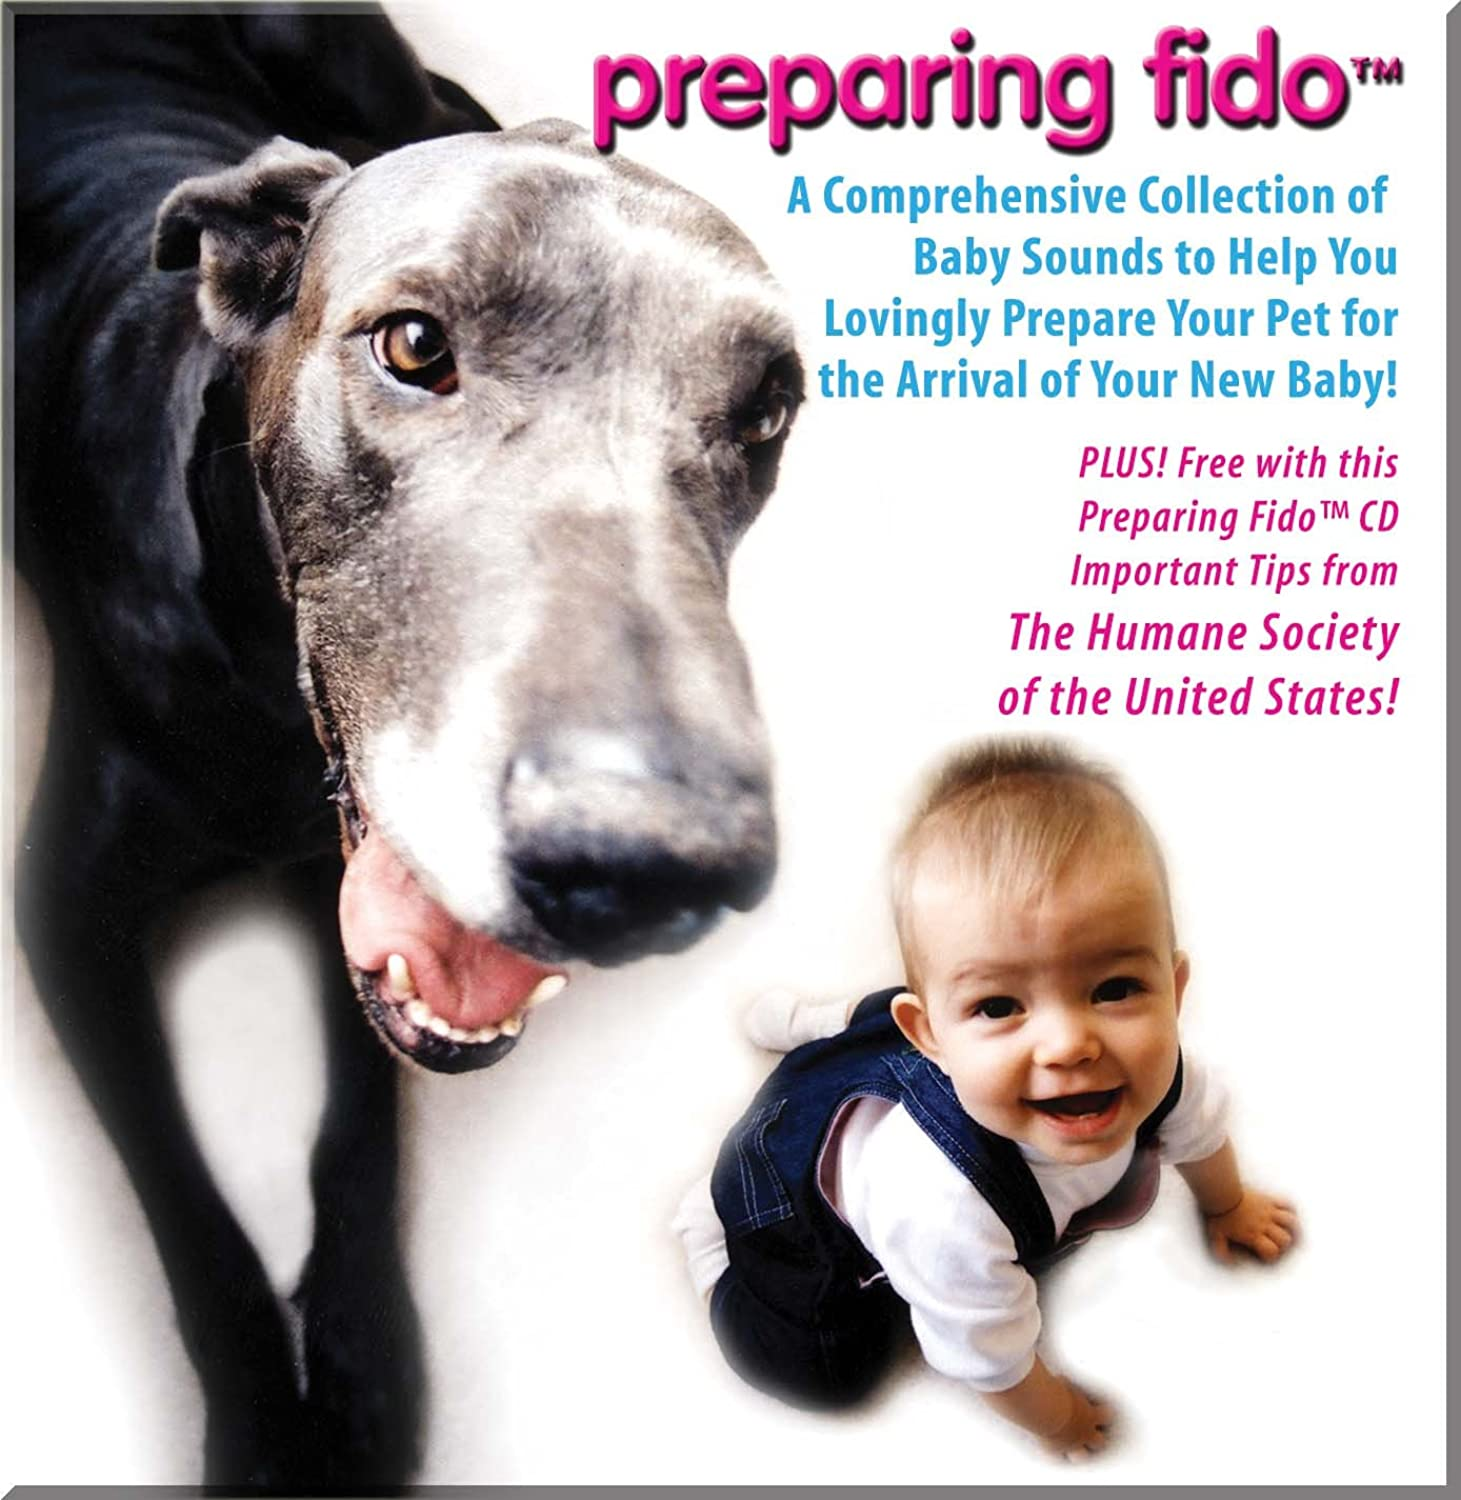 Preparing Fido  A Comprehensive Collection of Baby Sounds to Help You Lovingly Prepare Your Pet for The Arrival of Your New Baby